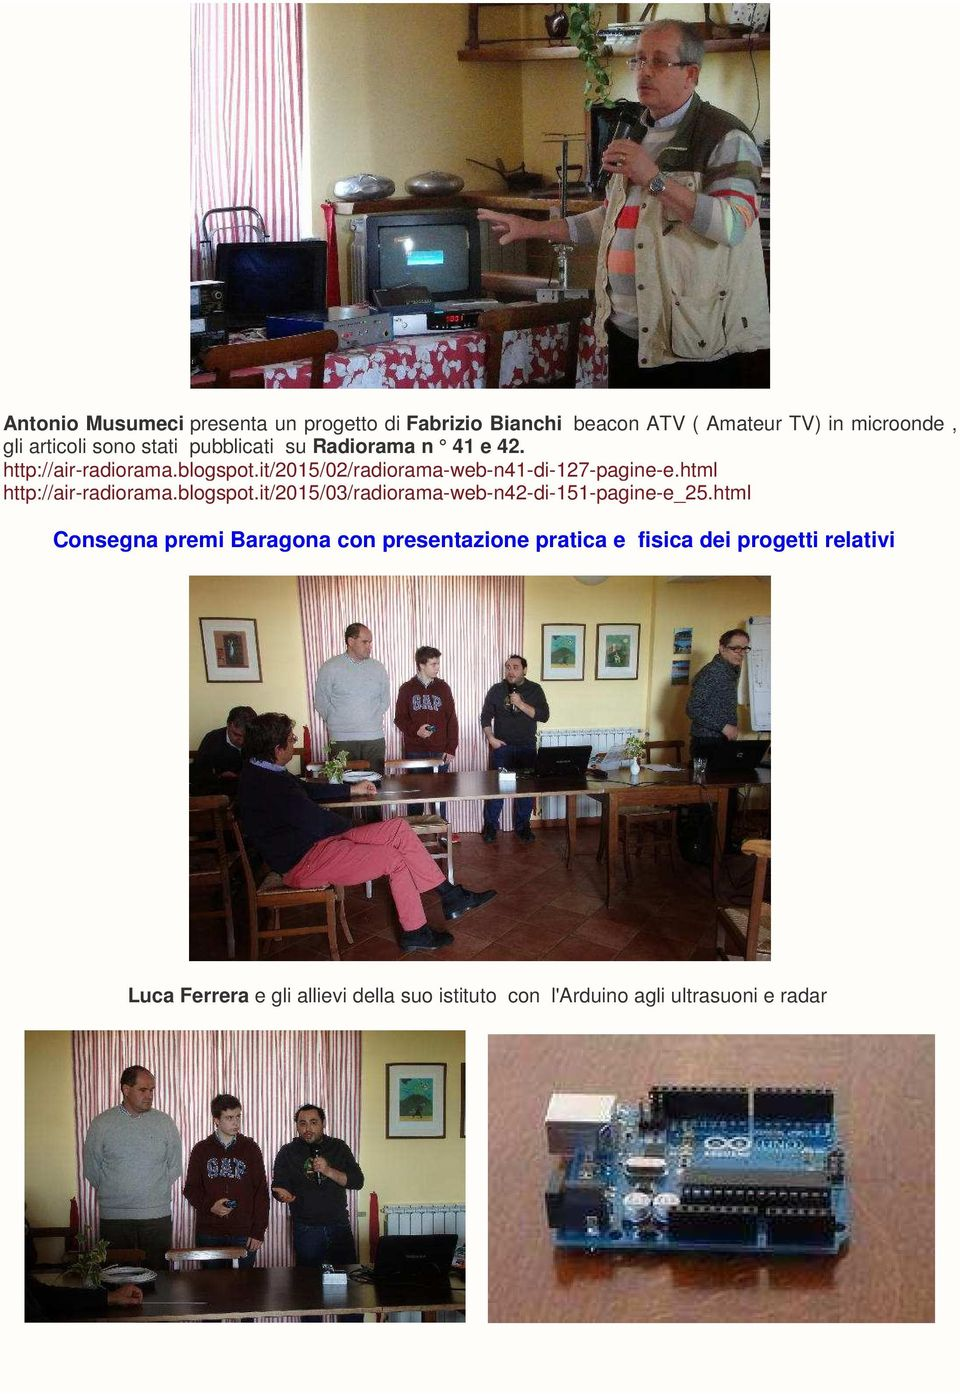 html http://air-radiorama.blogspot.it/2015/03/radiorama-web-n42-di-151-pagine-e_25.